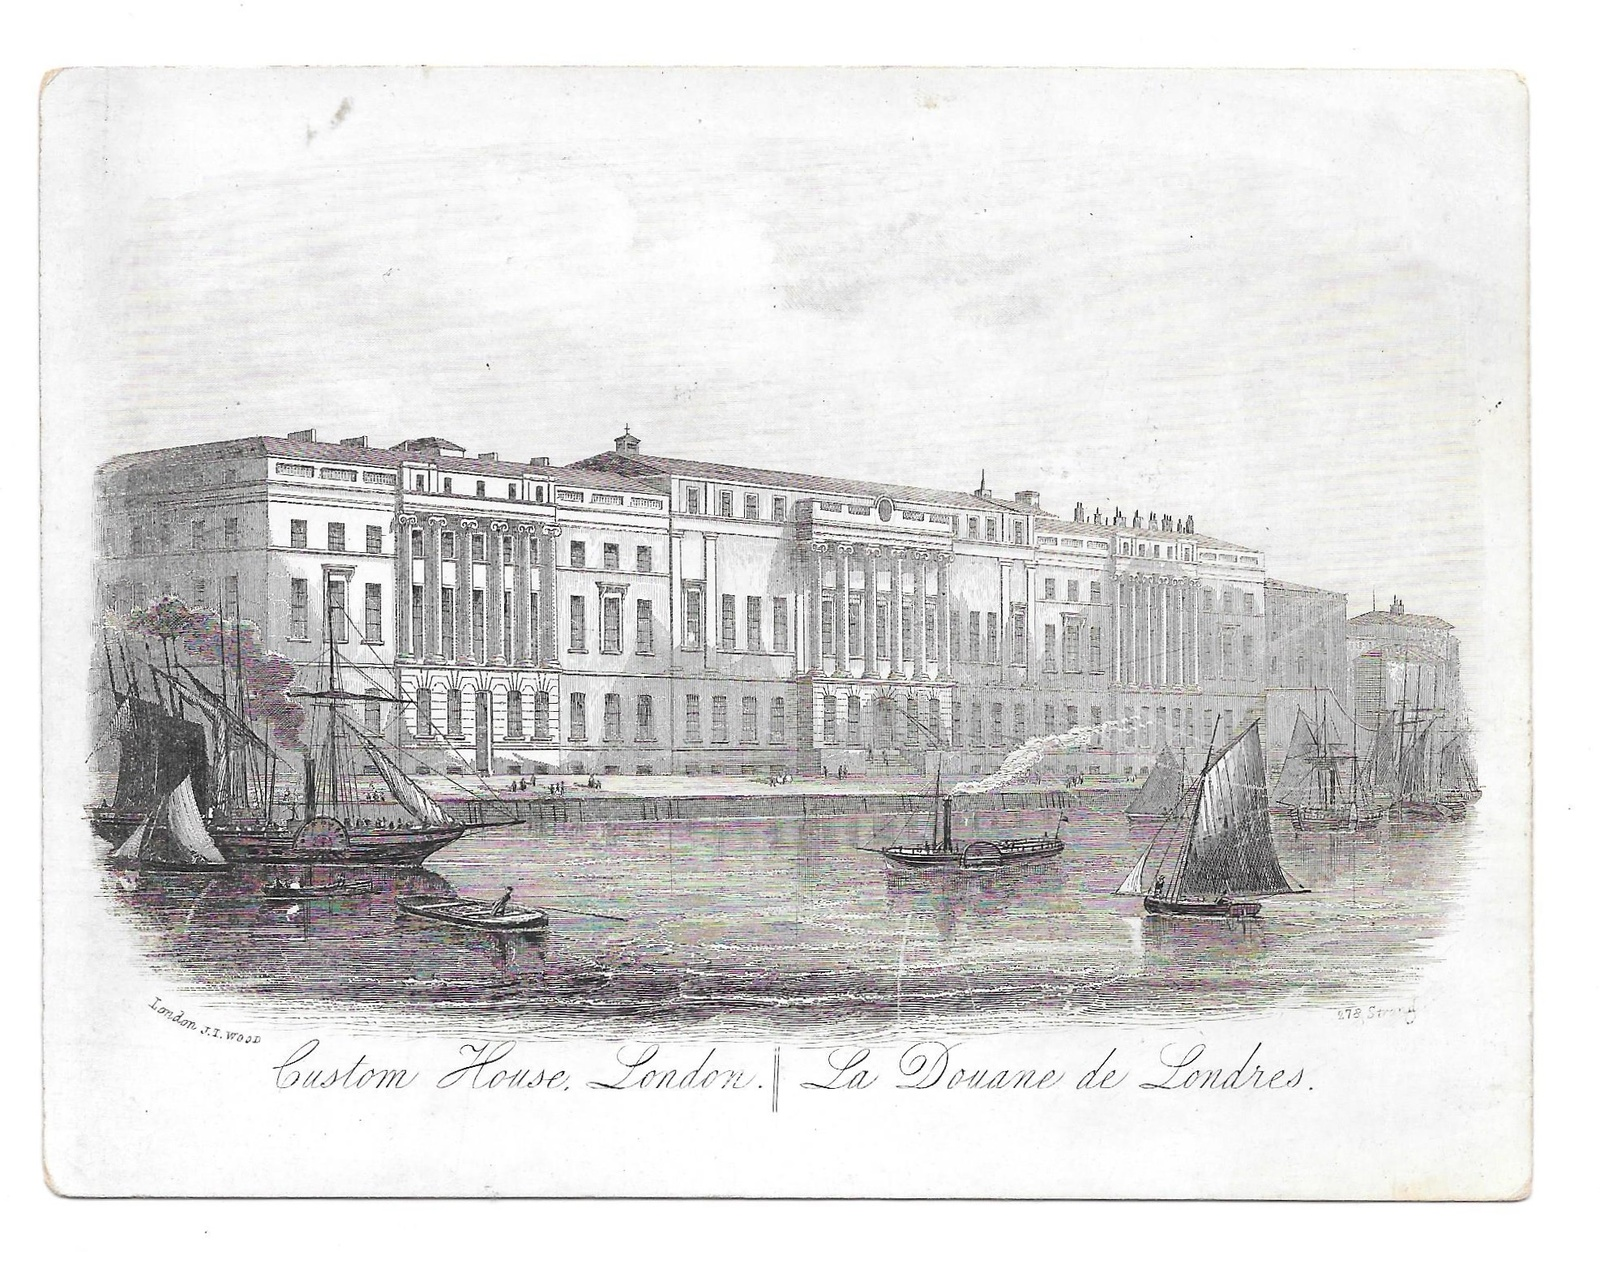 Primary image for Custom House London Steel LIne Engraving 1851 J T Wood Views of London Print